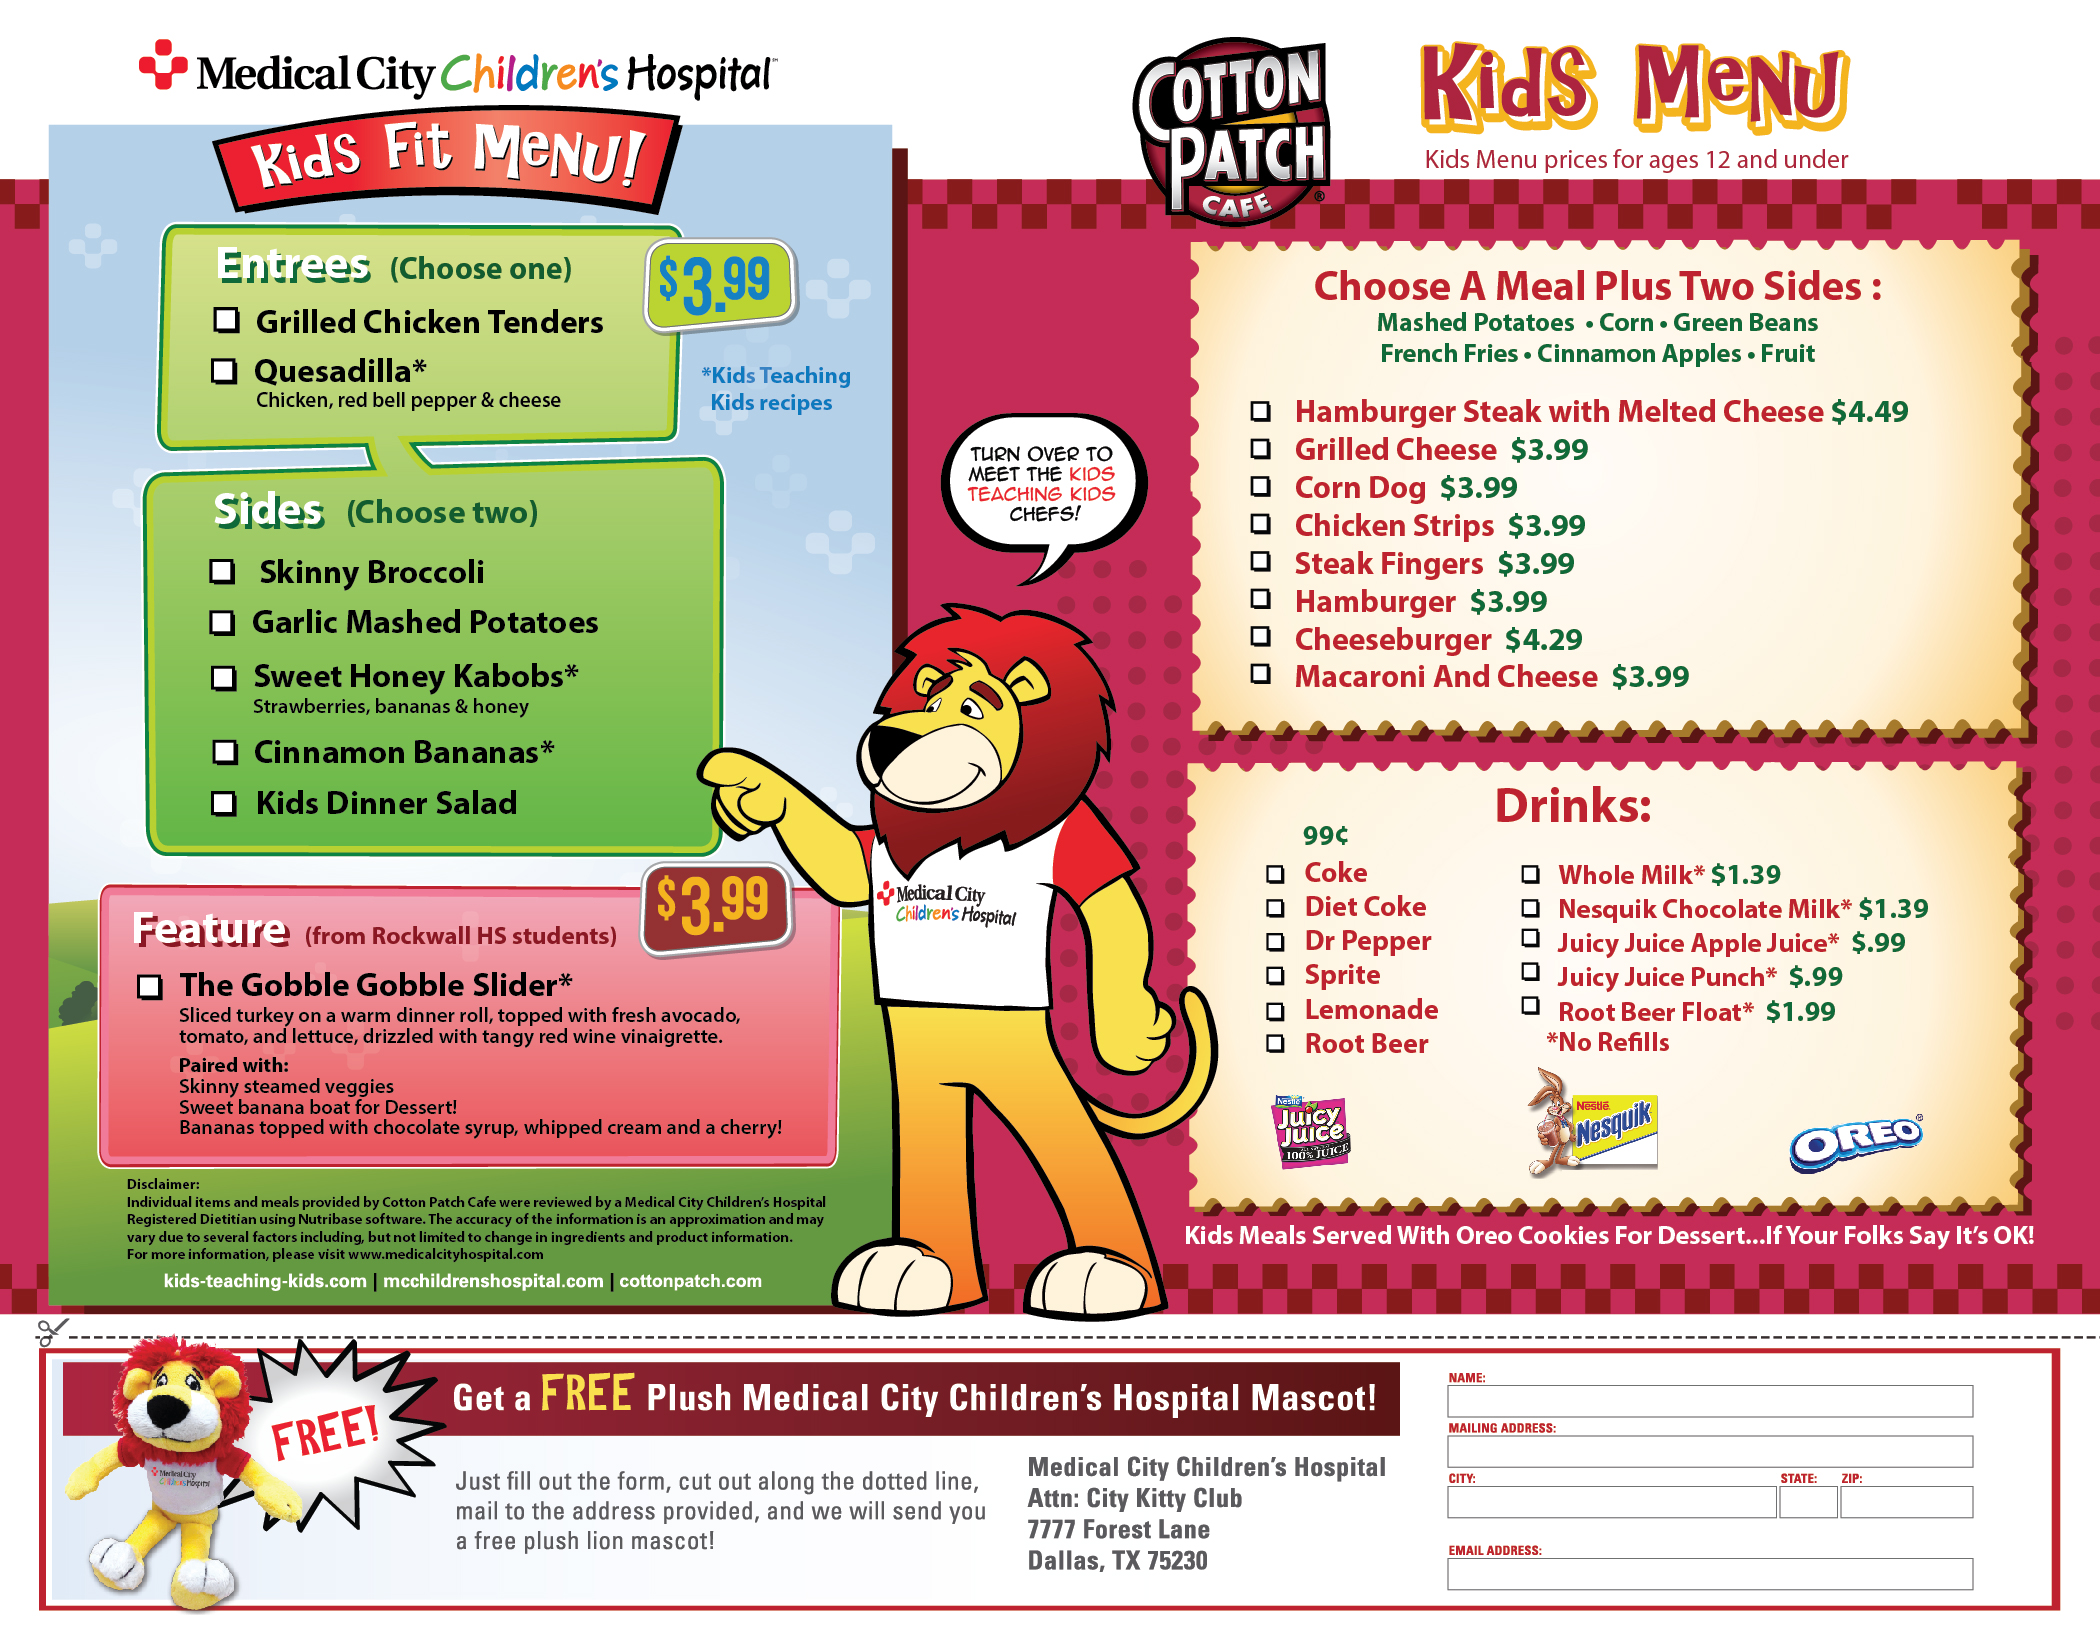 ROCKWALL TX Jan 21 2015 Cotton Patch In Rockwall Released Its Newest Version Of Their Kids Fit Menu On The Is Gobbler Slider